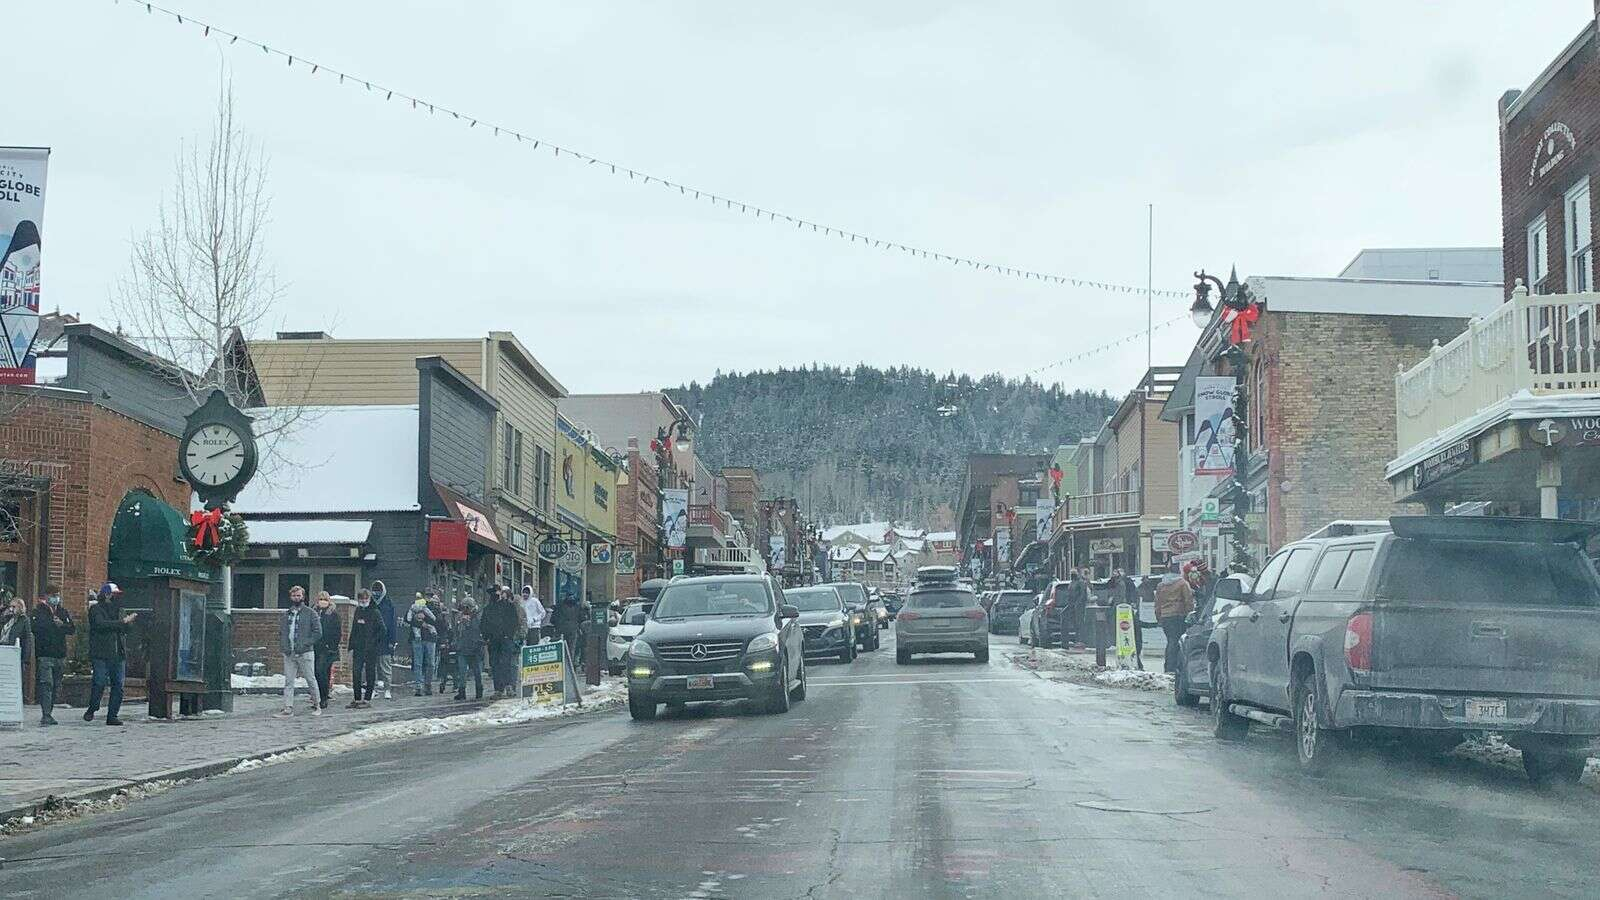 Park City-area unemployment rate levels out, more evidence gains slowed into the ski season